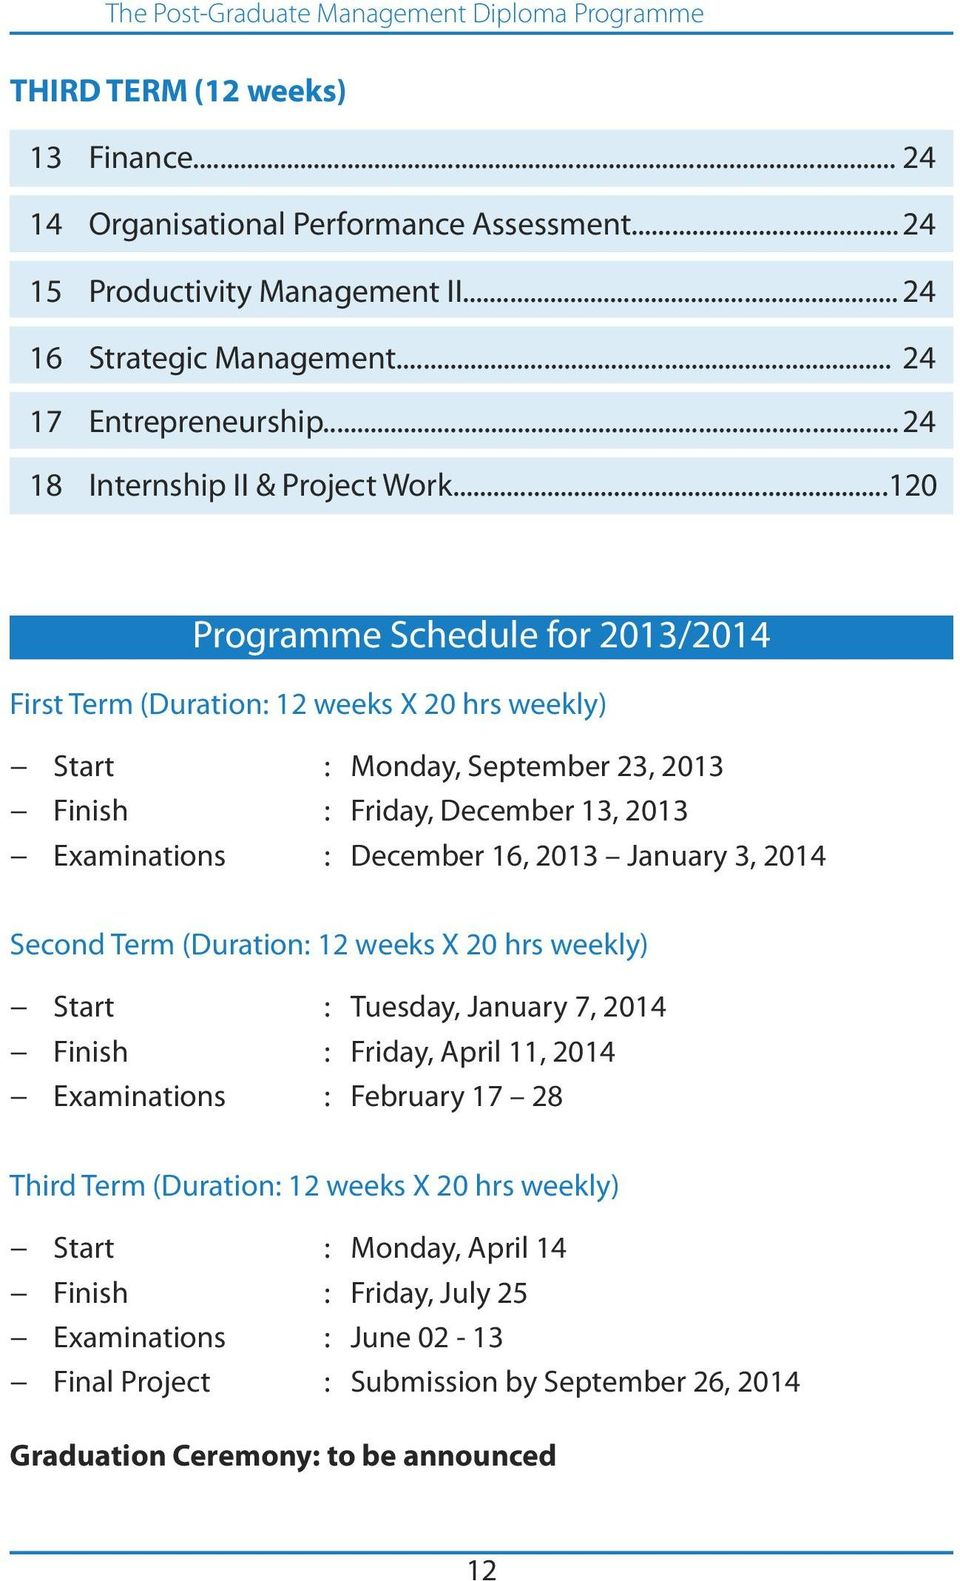 ..120 Programme Schedule for 2013/2014 First Term (Duration: 12 weeks X 20 hrs weekly) Start : Monday, September 23, 2013 Finish : Friday, December 13, 2013 Examinations : December 16, 2013